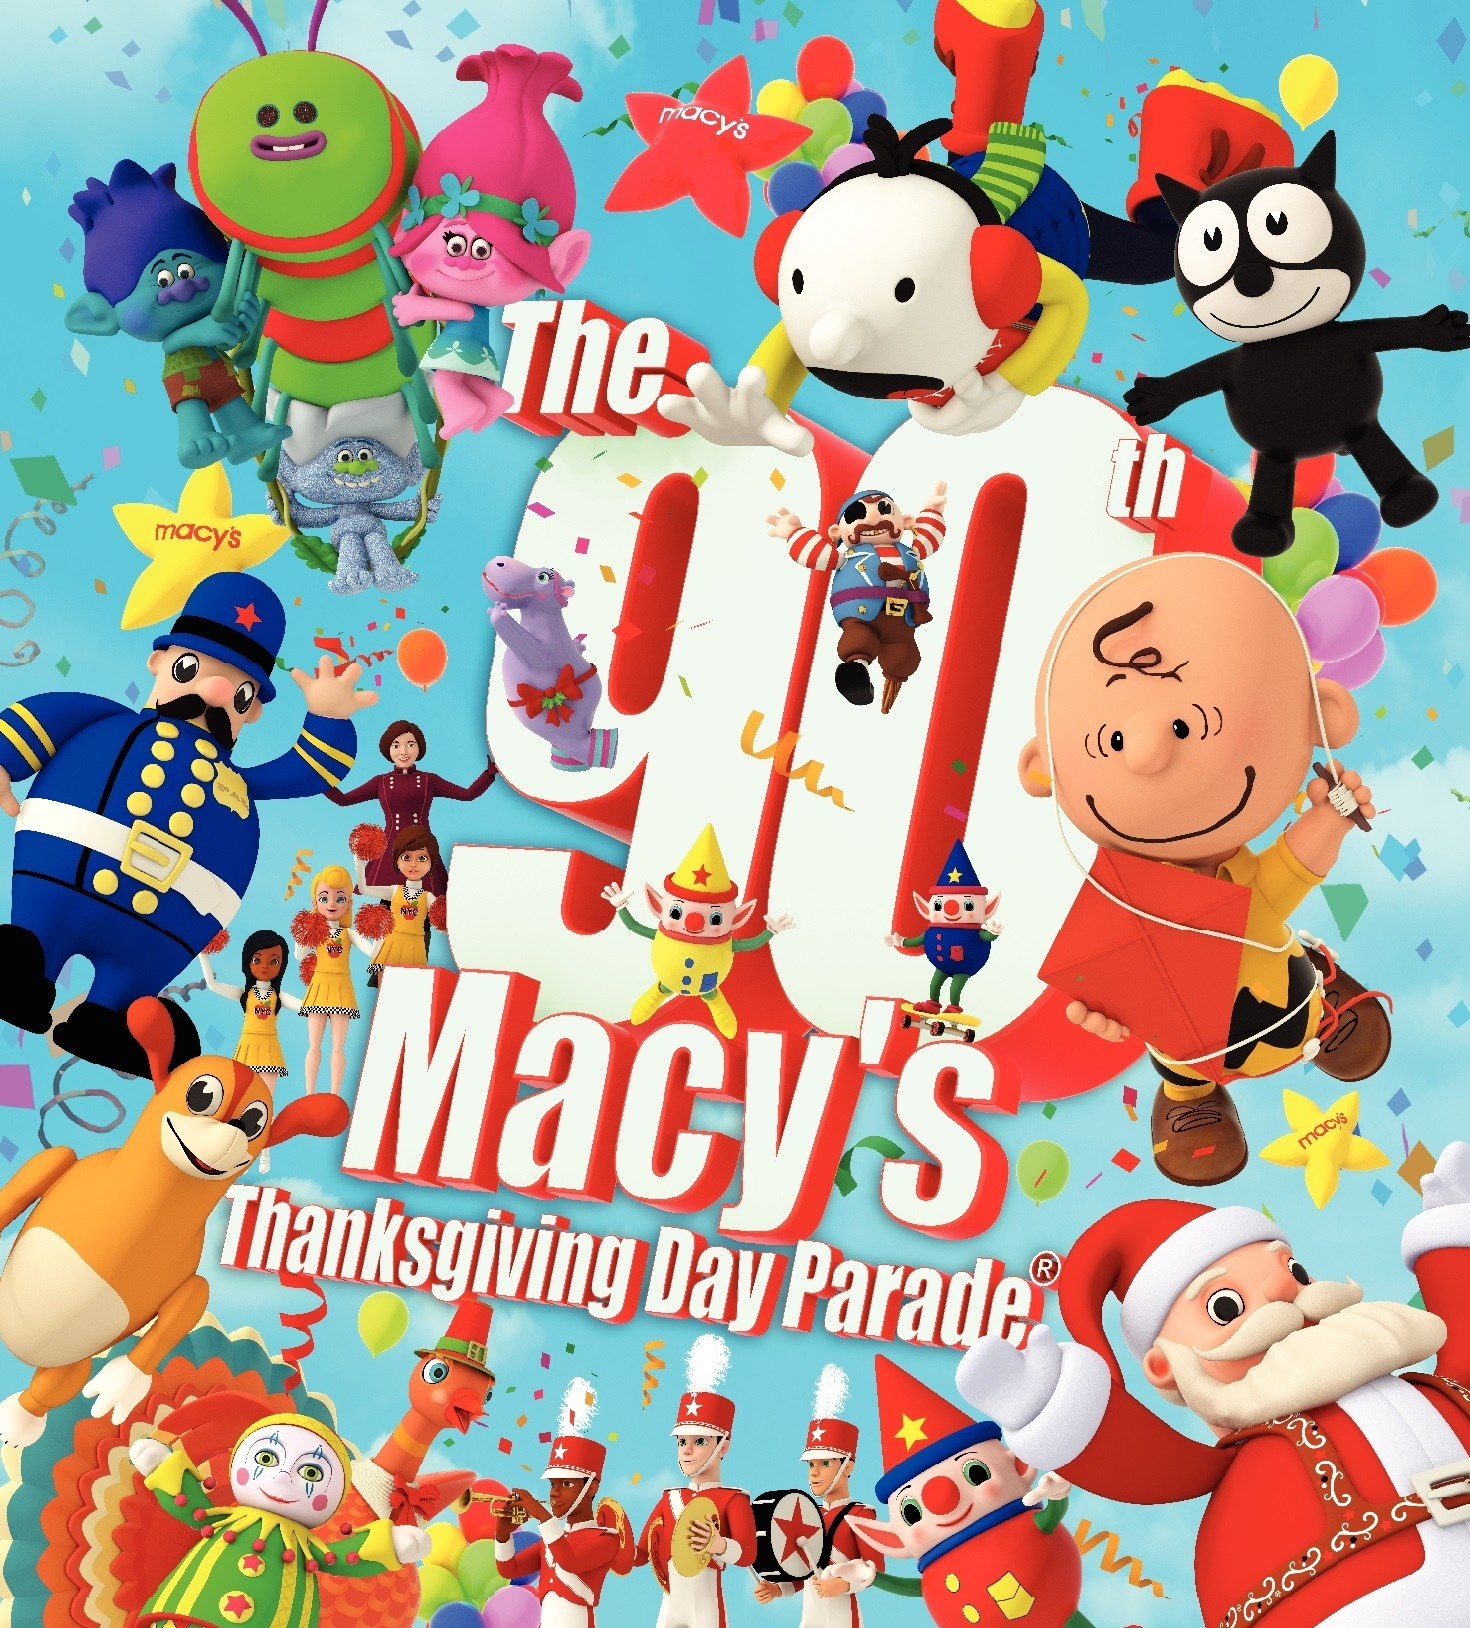 a-historic-procession-the-world-famous-macys-thanksgiving-day-parade-celebrates-90-years-as-the-official-start-of-the-holiday-season-graphic-business-wire